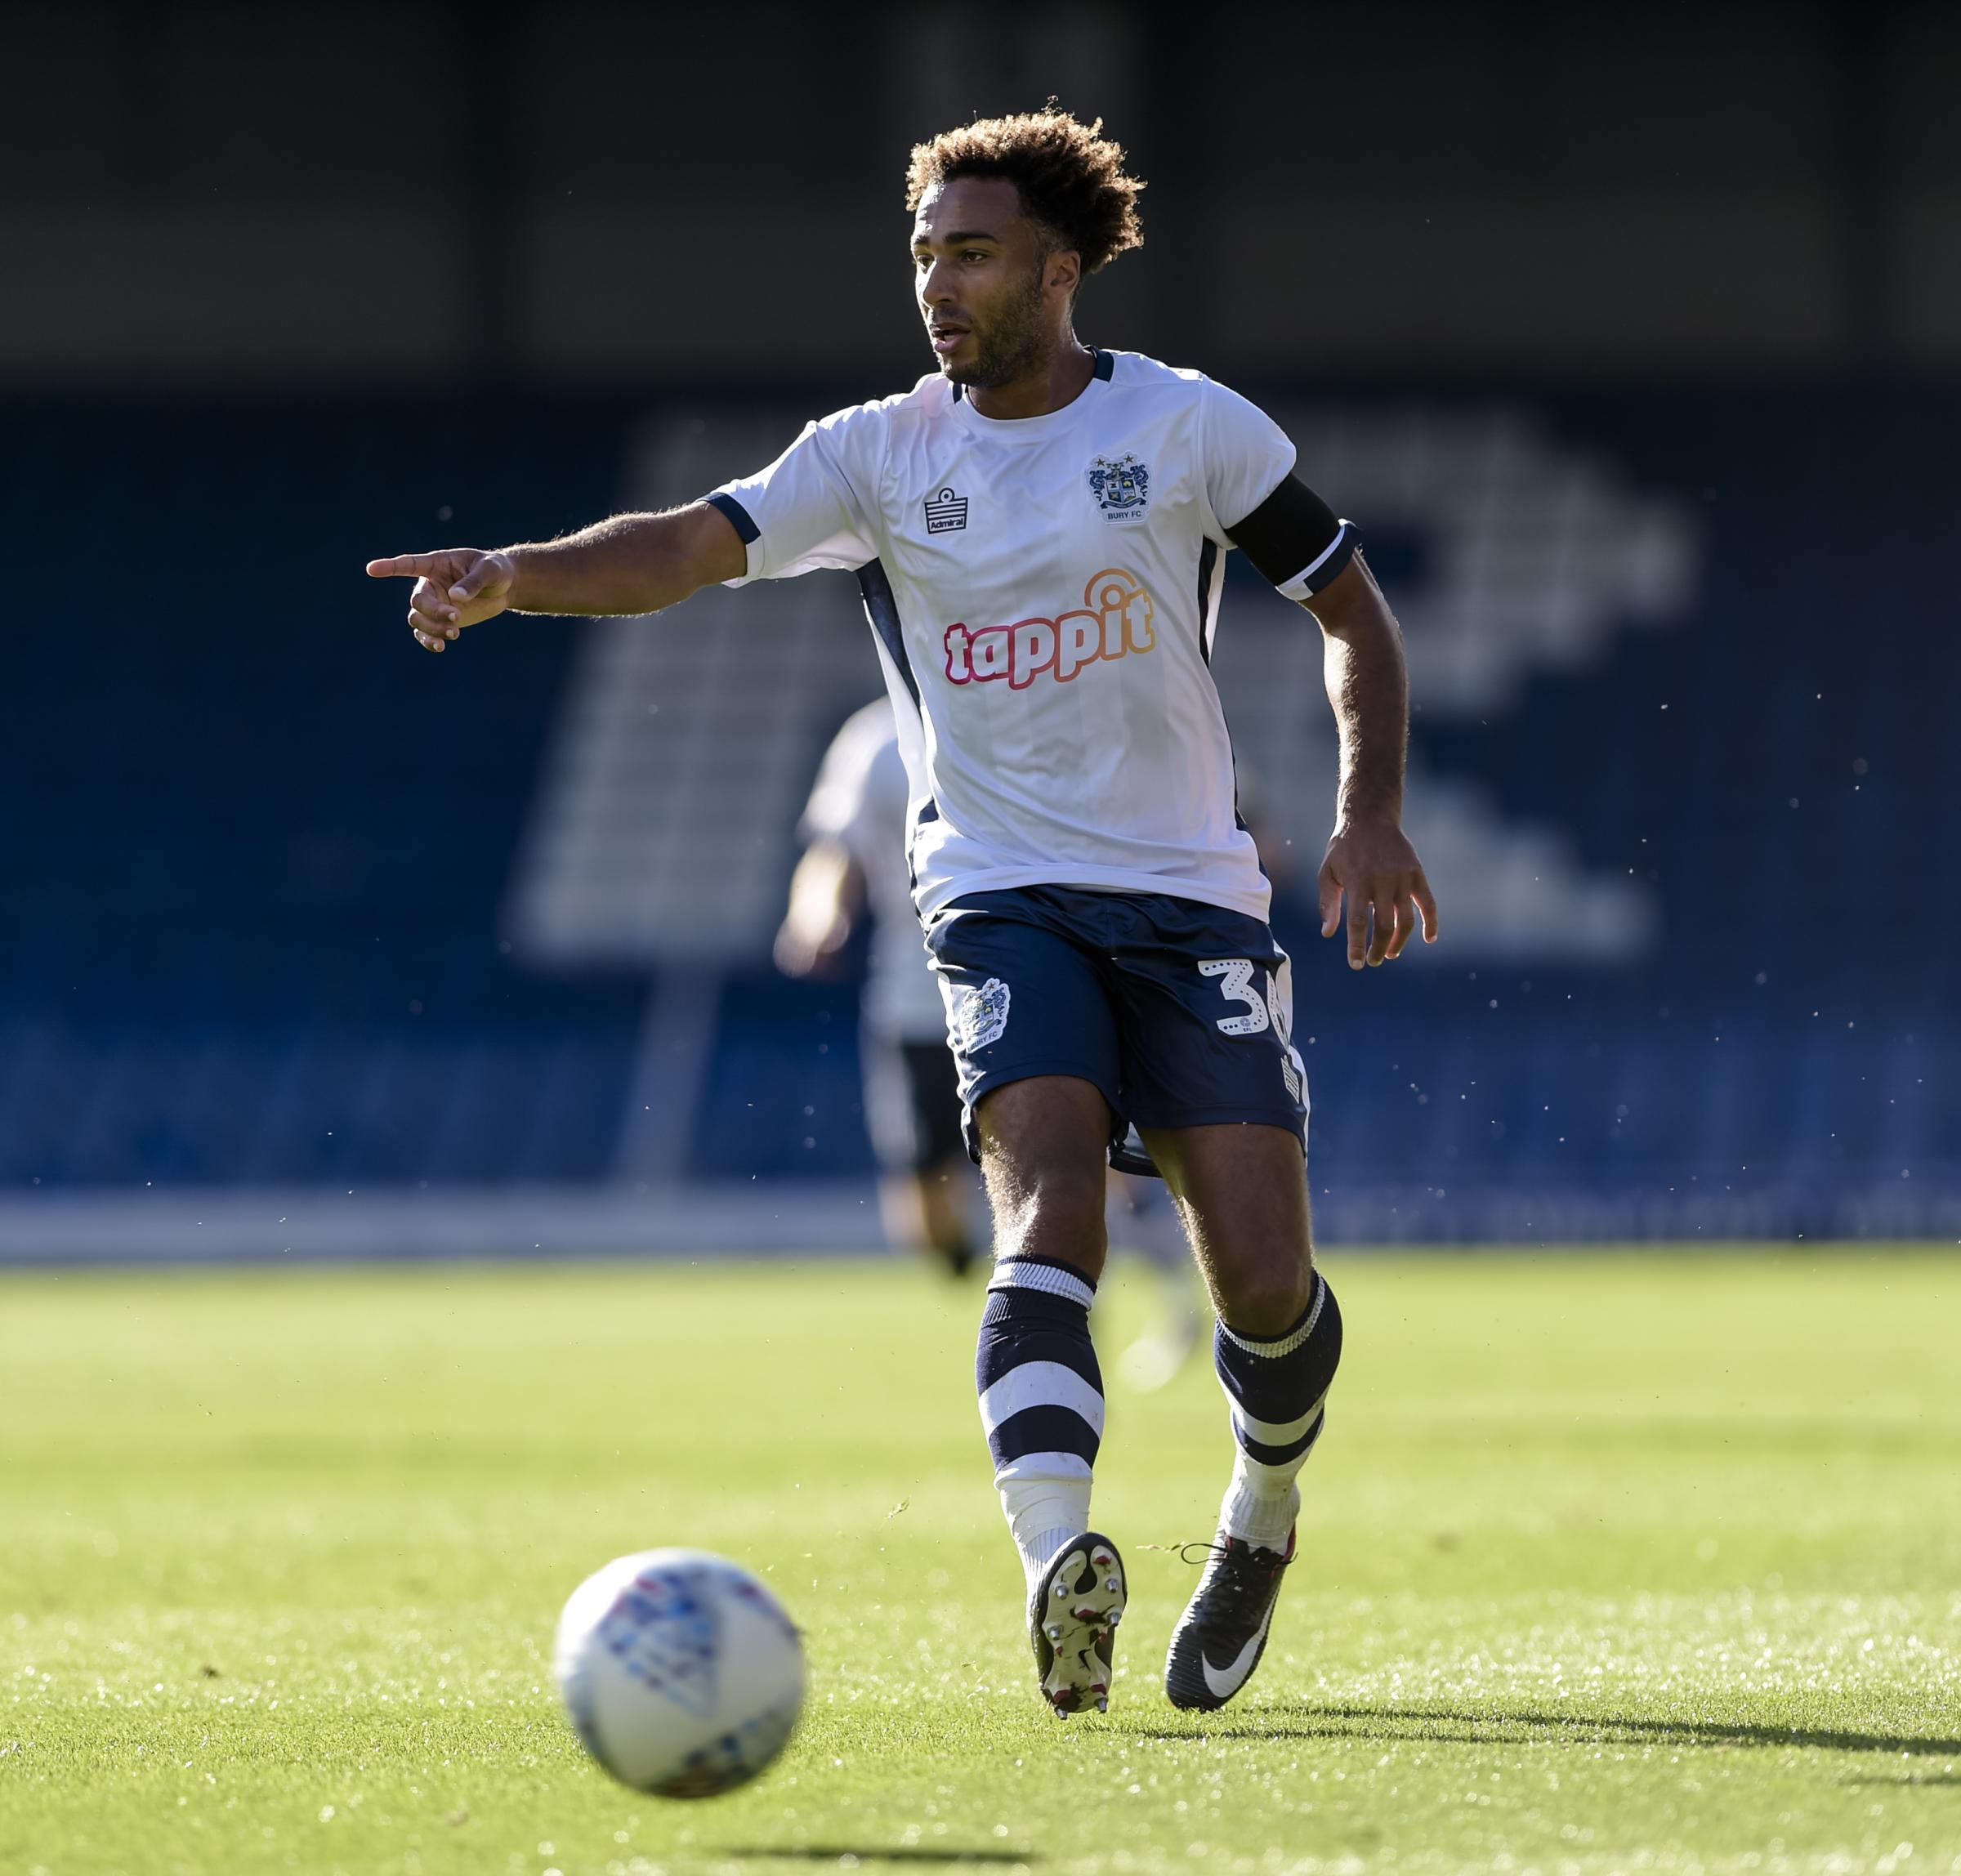 Bury forward Nicky Maynard during the Sky Bet League 2 match between Bury FC and Mansfield Town at The Energy Check Stadium at Gigg Lane, Bury on Saturday 6th October 2018. Credit: Andy Whitehead...Tel: +44 7746 877546.e-mail: info@andywhiteheadphotograph